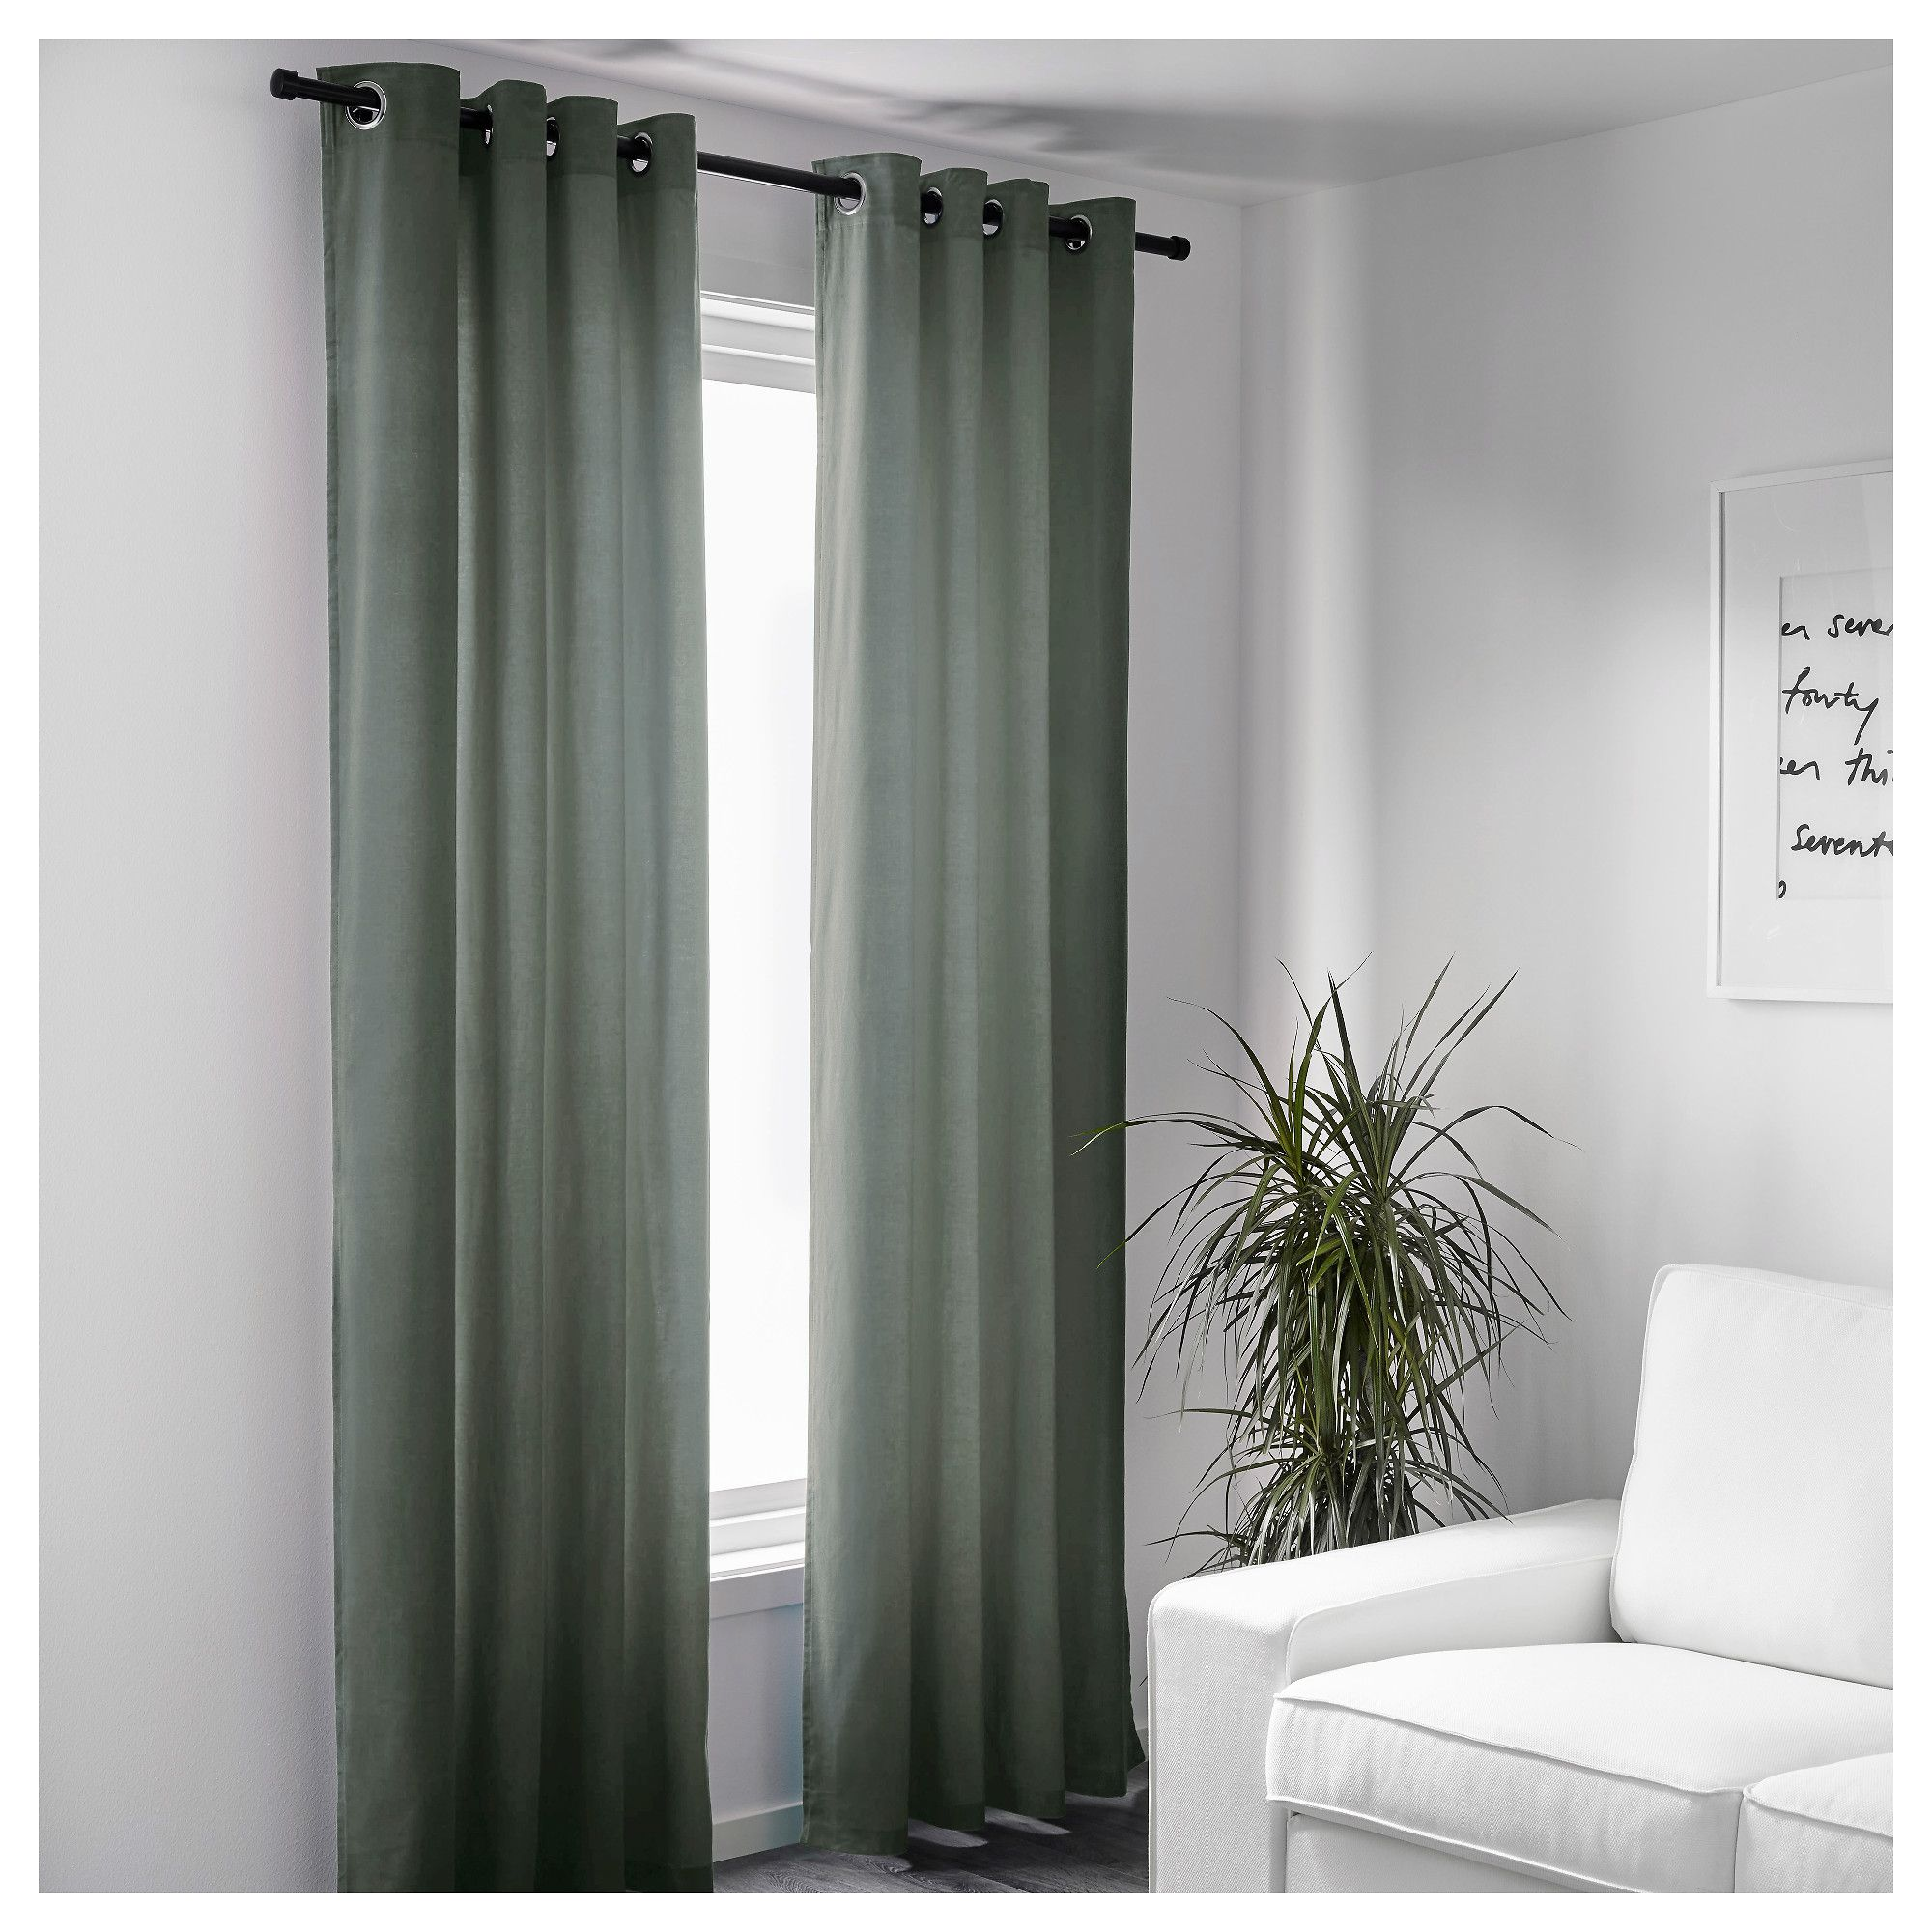 blackout net panel gopelling furniture grey room darkening curtains hunter gorgeous blue white green for window living flowers brown with and lime grommet livingroom majestic curtain dark lined